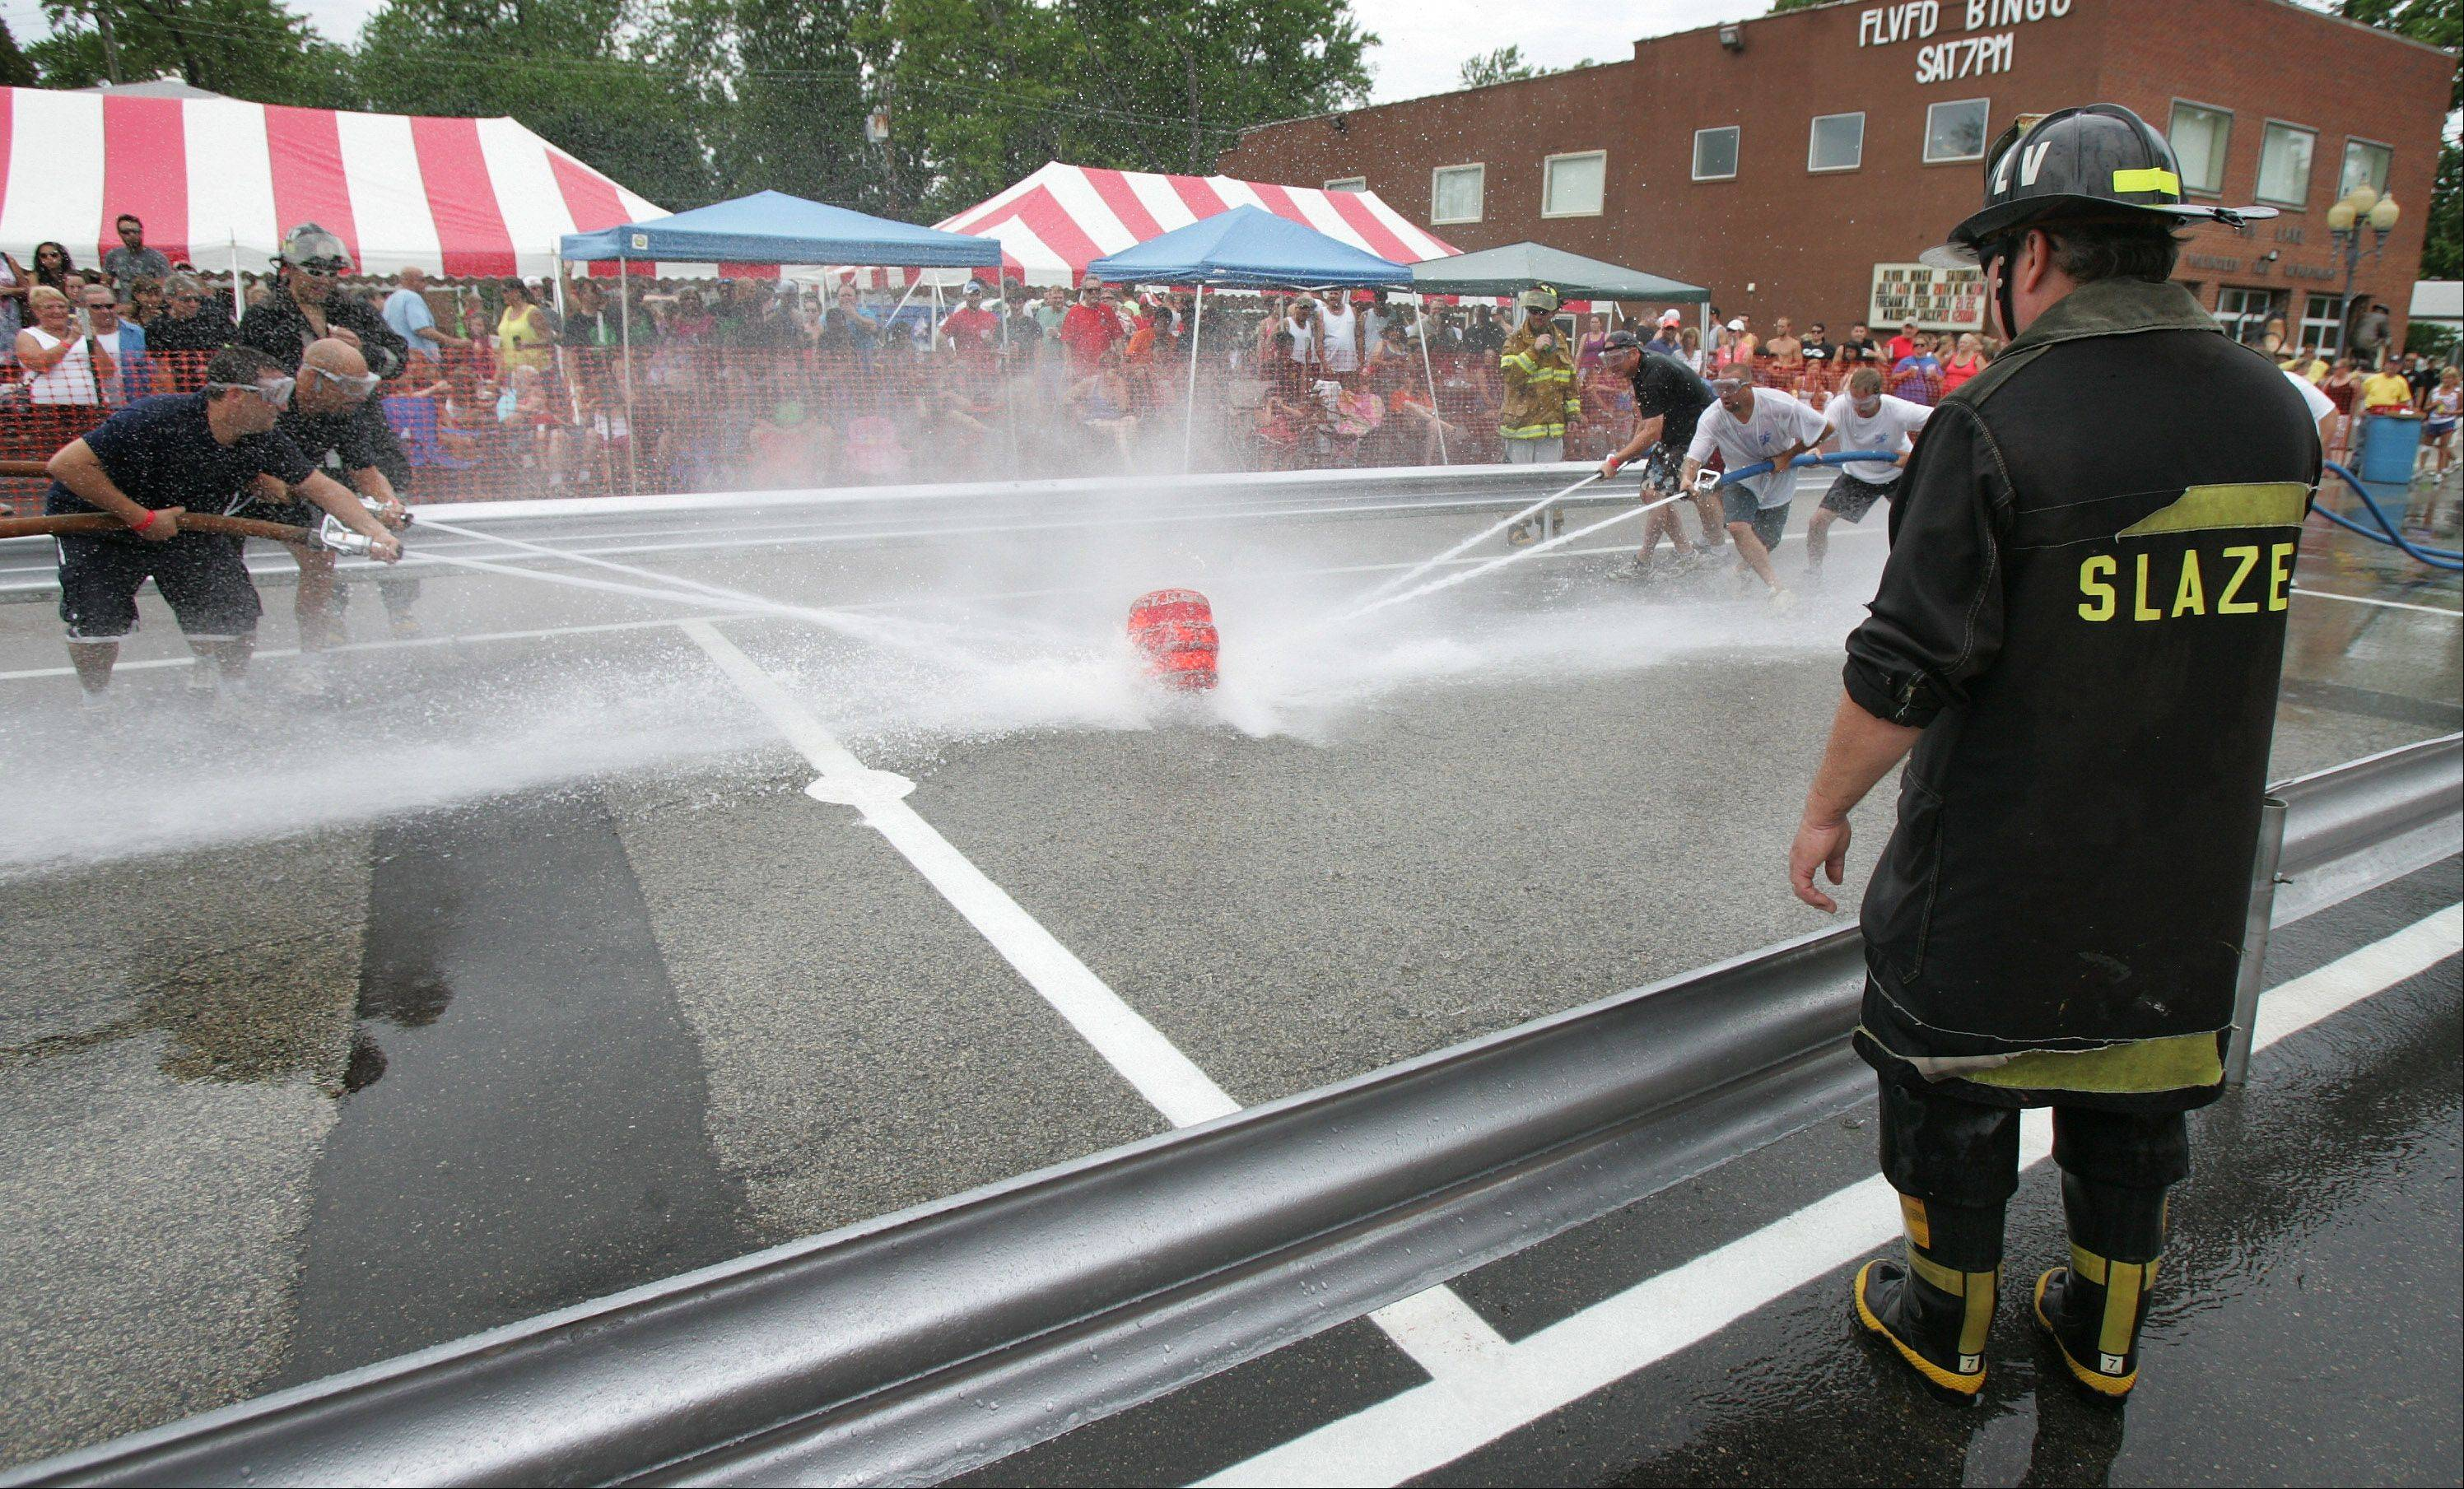 Lake Villa Fire Chief Frank Slazes, right, judges the battle between Team Chain Crawl and Team Merlins during the water fights at the Fox Lake Fireman's Festival Sunday near the Fox Lake bingo hall.